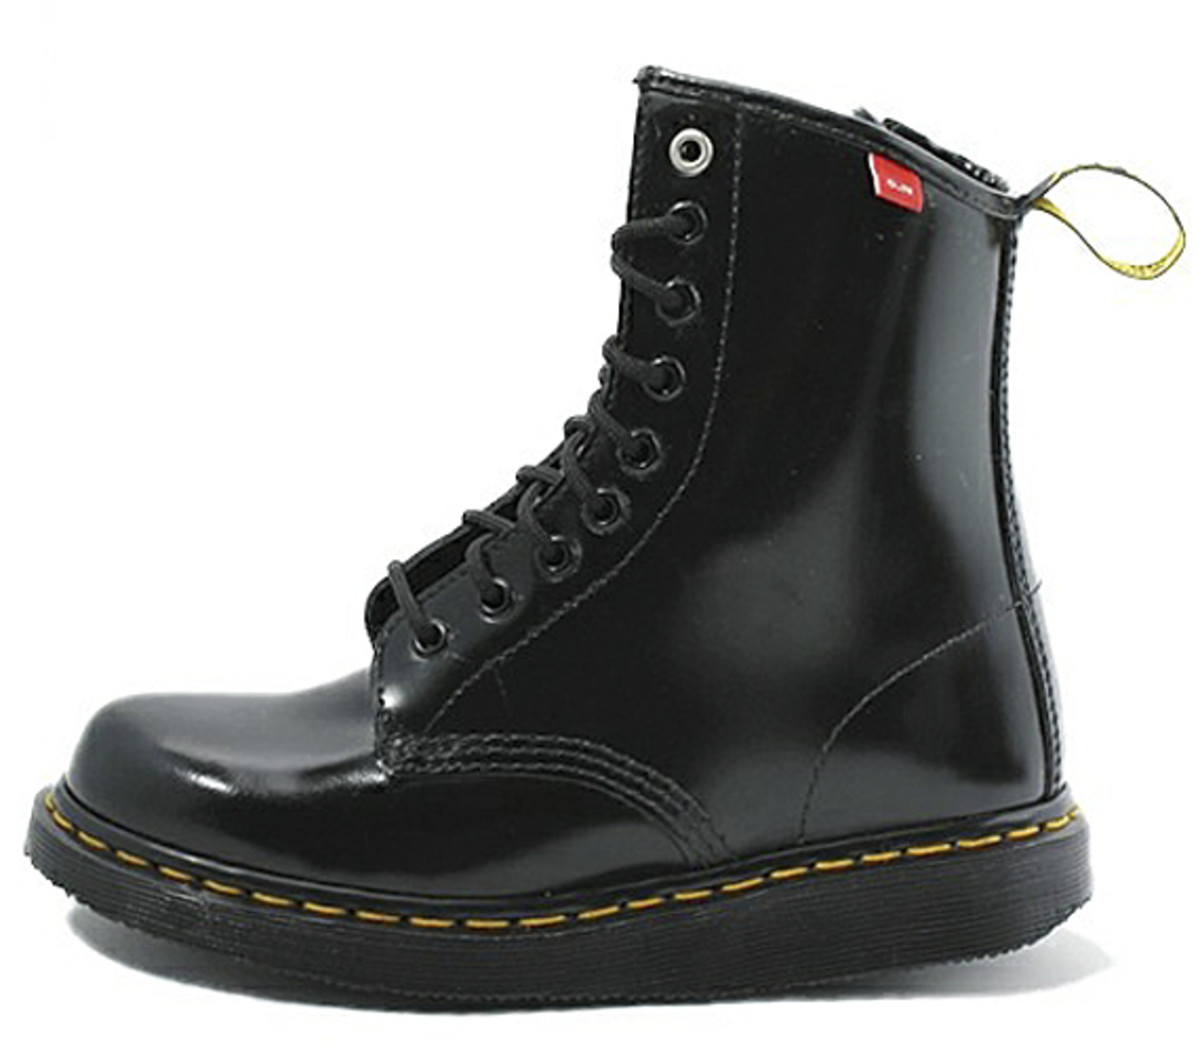 dr-martens-bedwin-heartbreaker-dr-know-boots-02